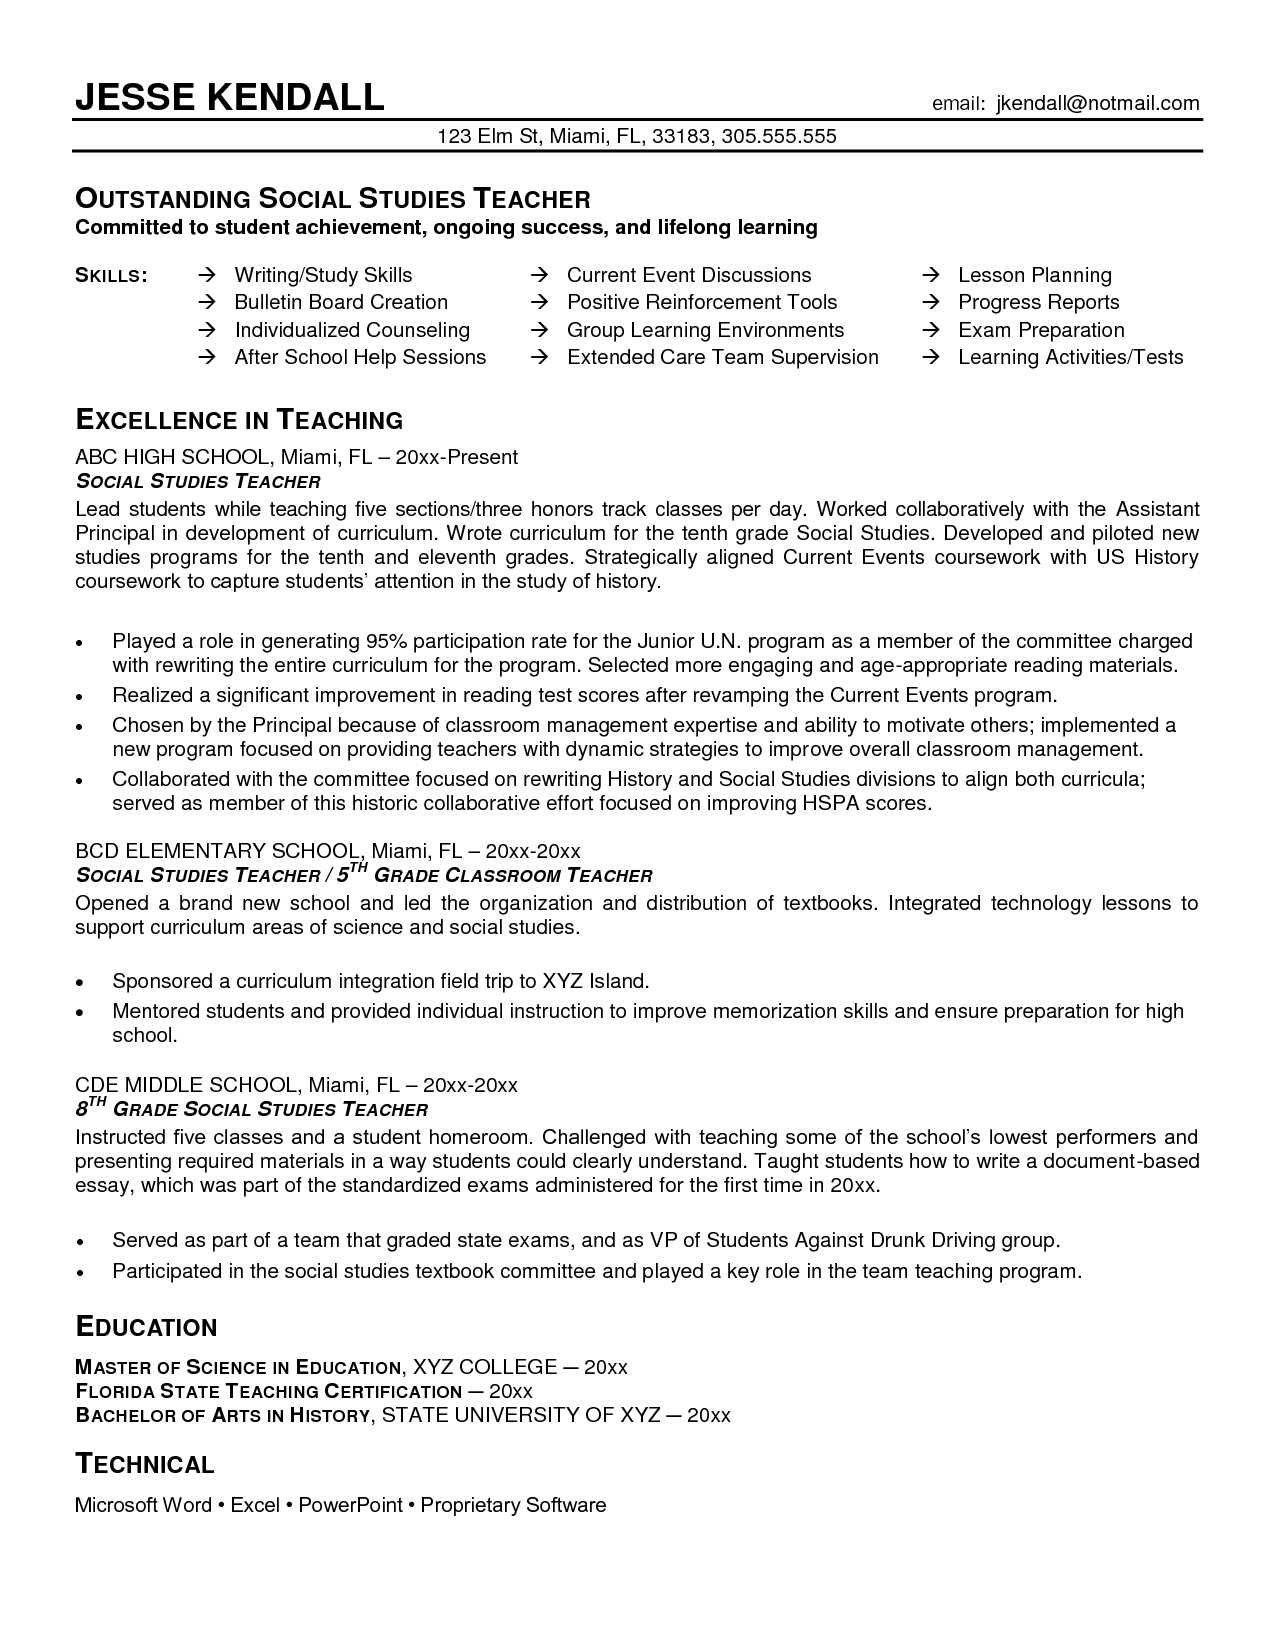 Amazing History Teacher Sample Resume   Google Search Intended Social Studies Teacher Resume